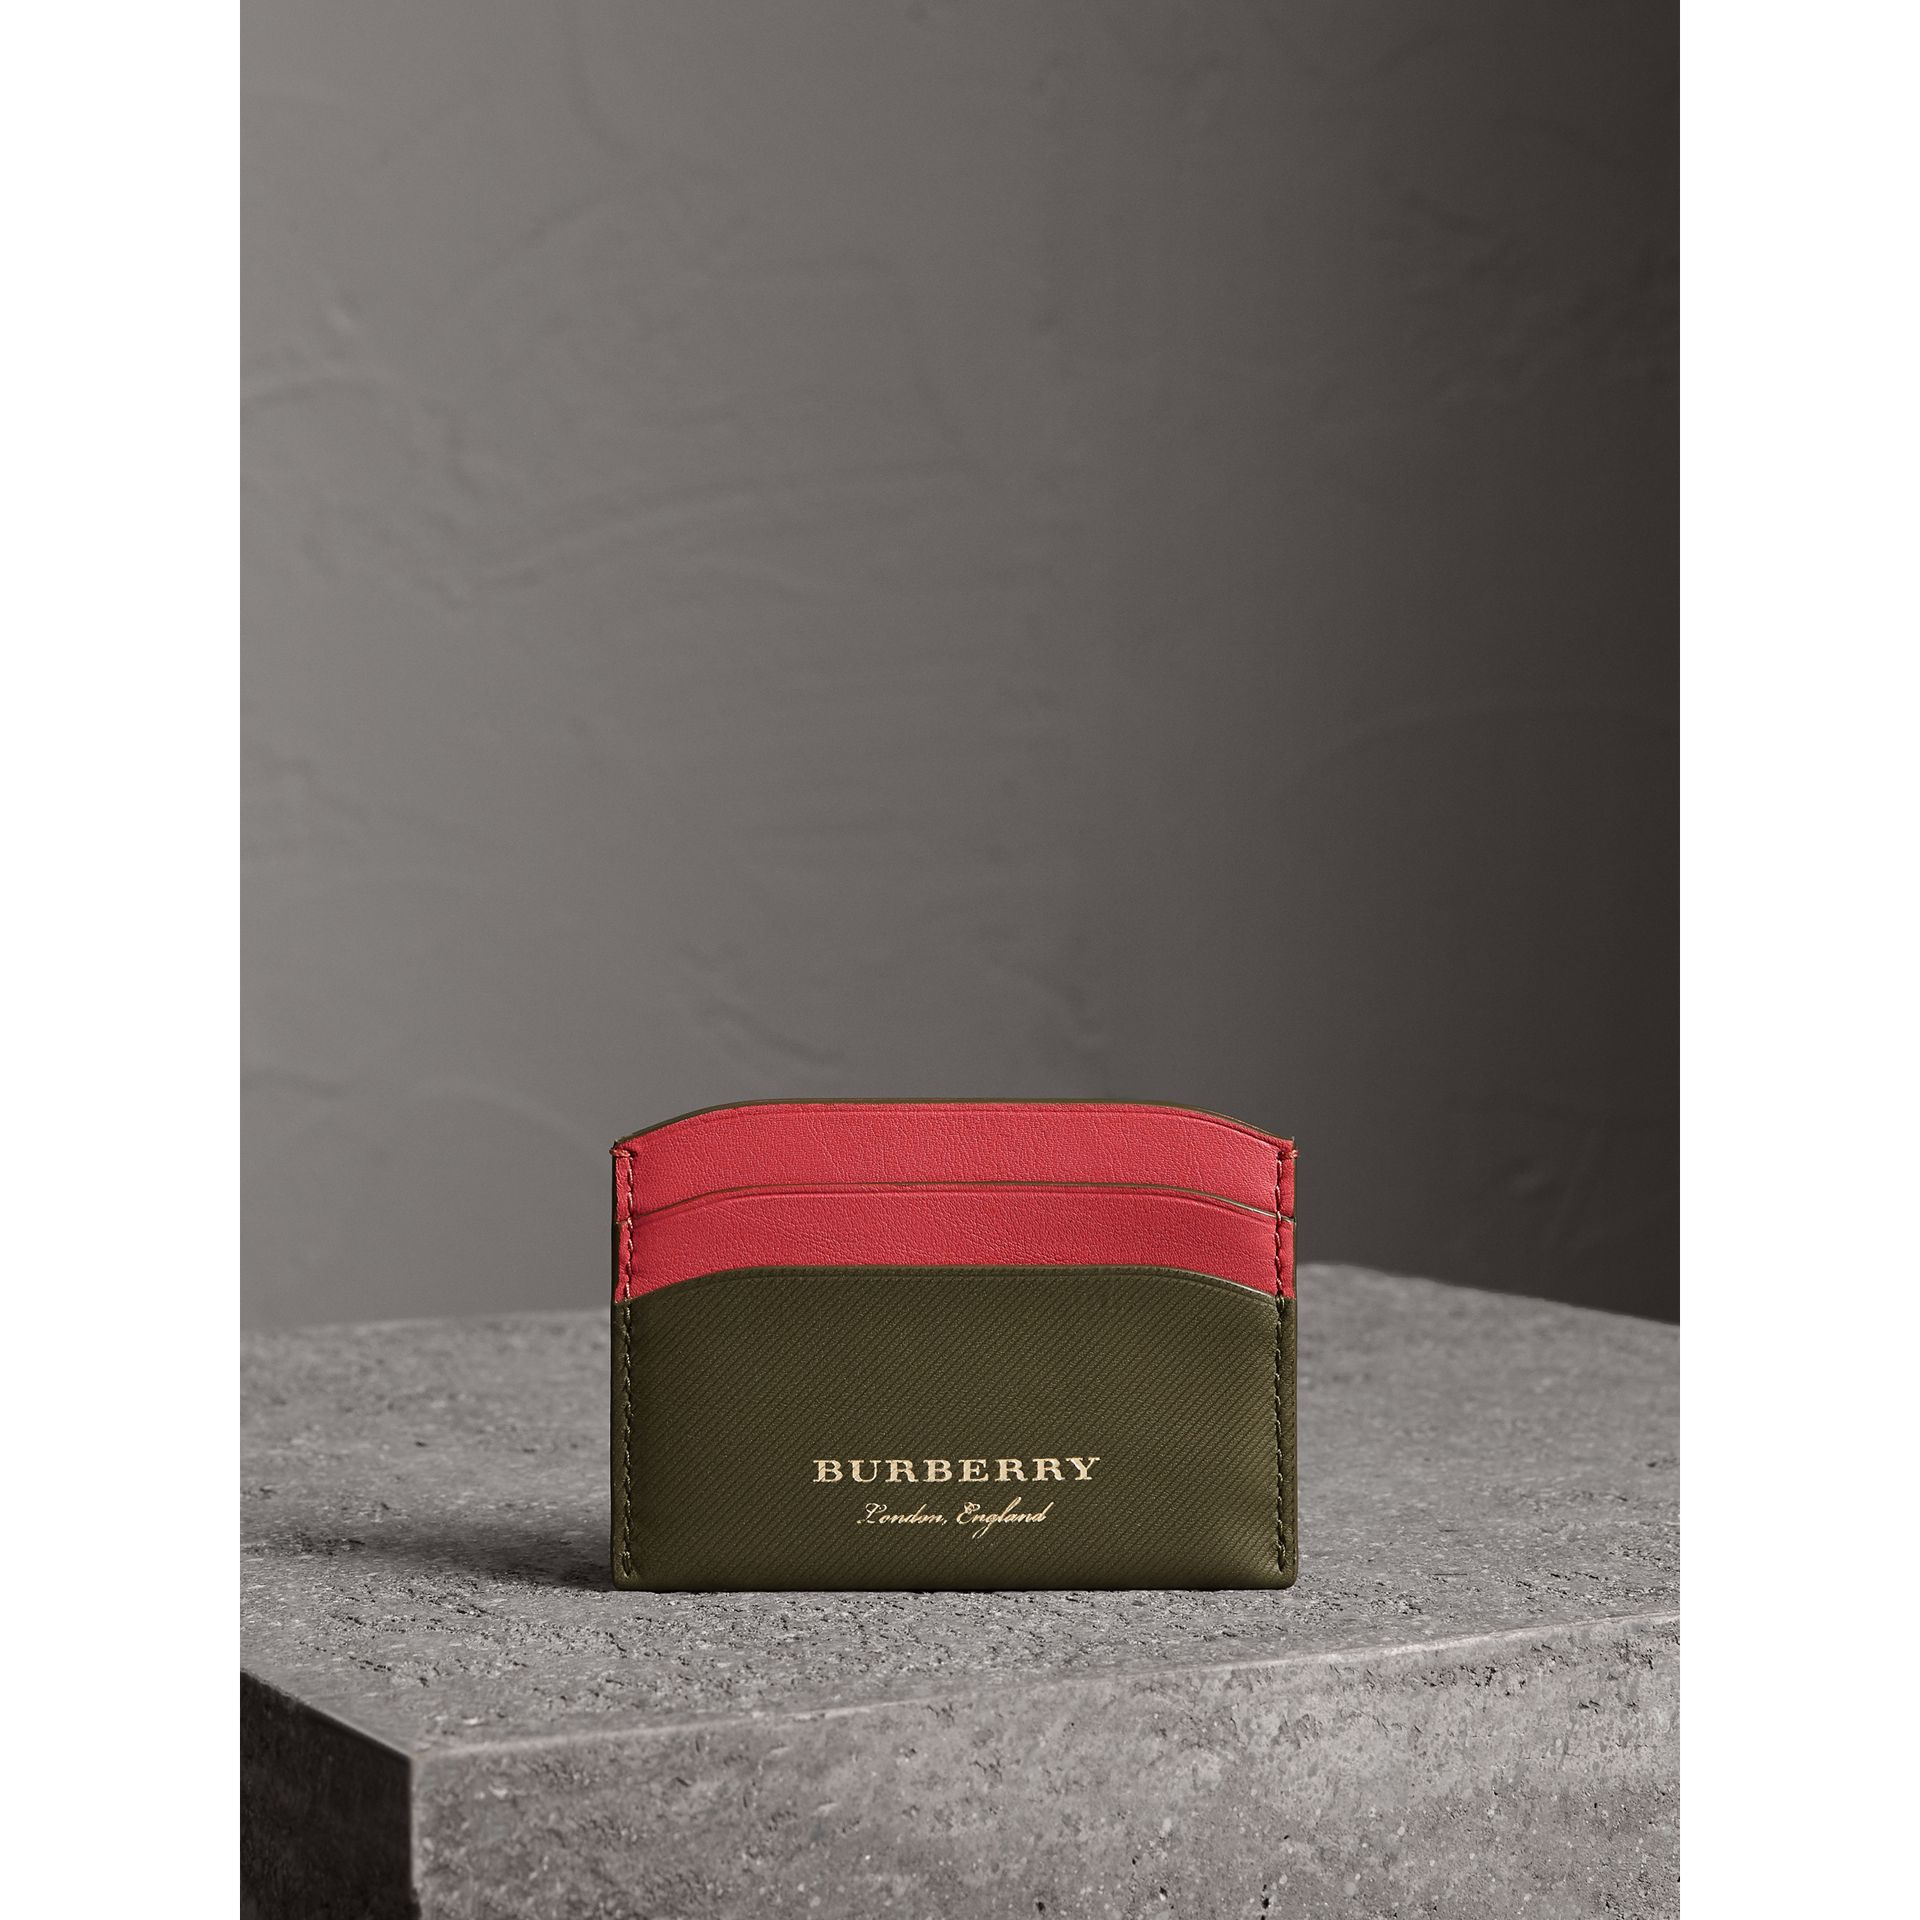 Two-tone Trench Leather Card Case in Mss Green/ Blsm Pink - Women | Burberry United States - gallery image 3